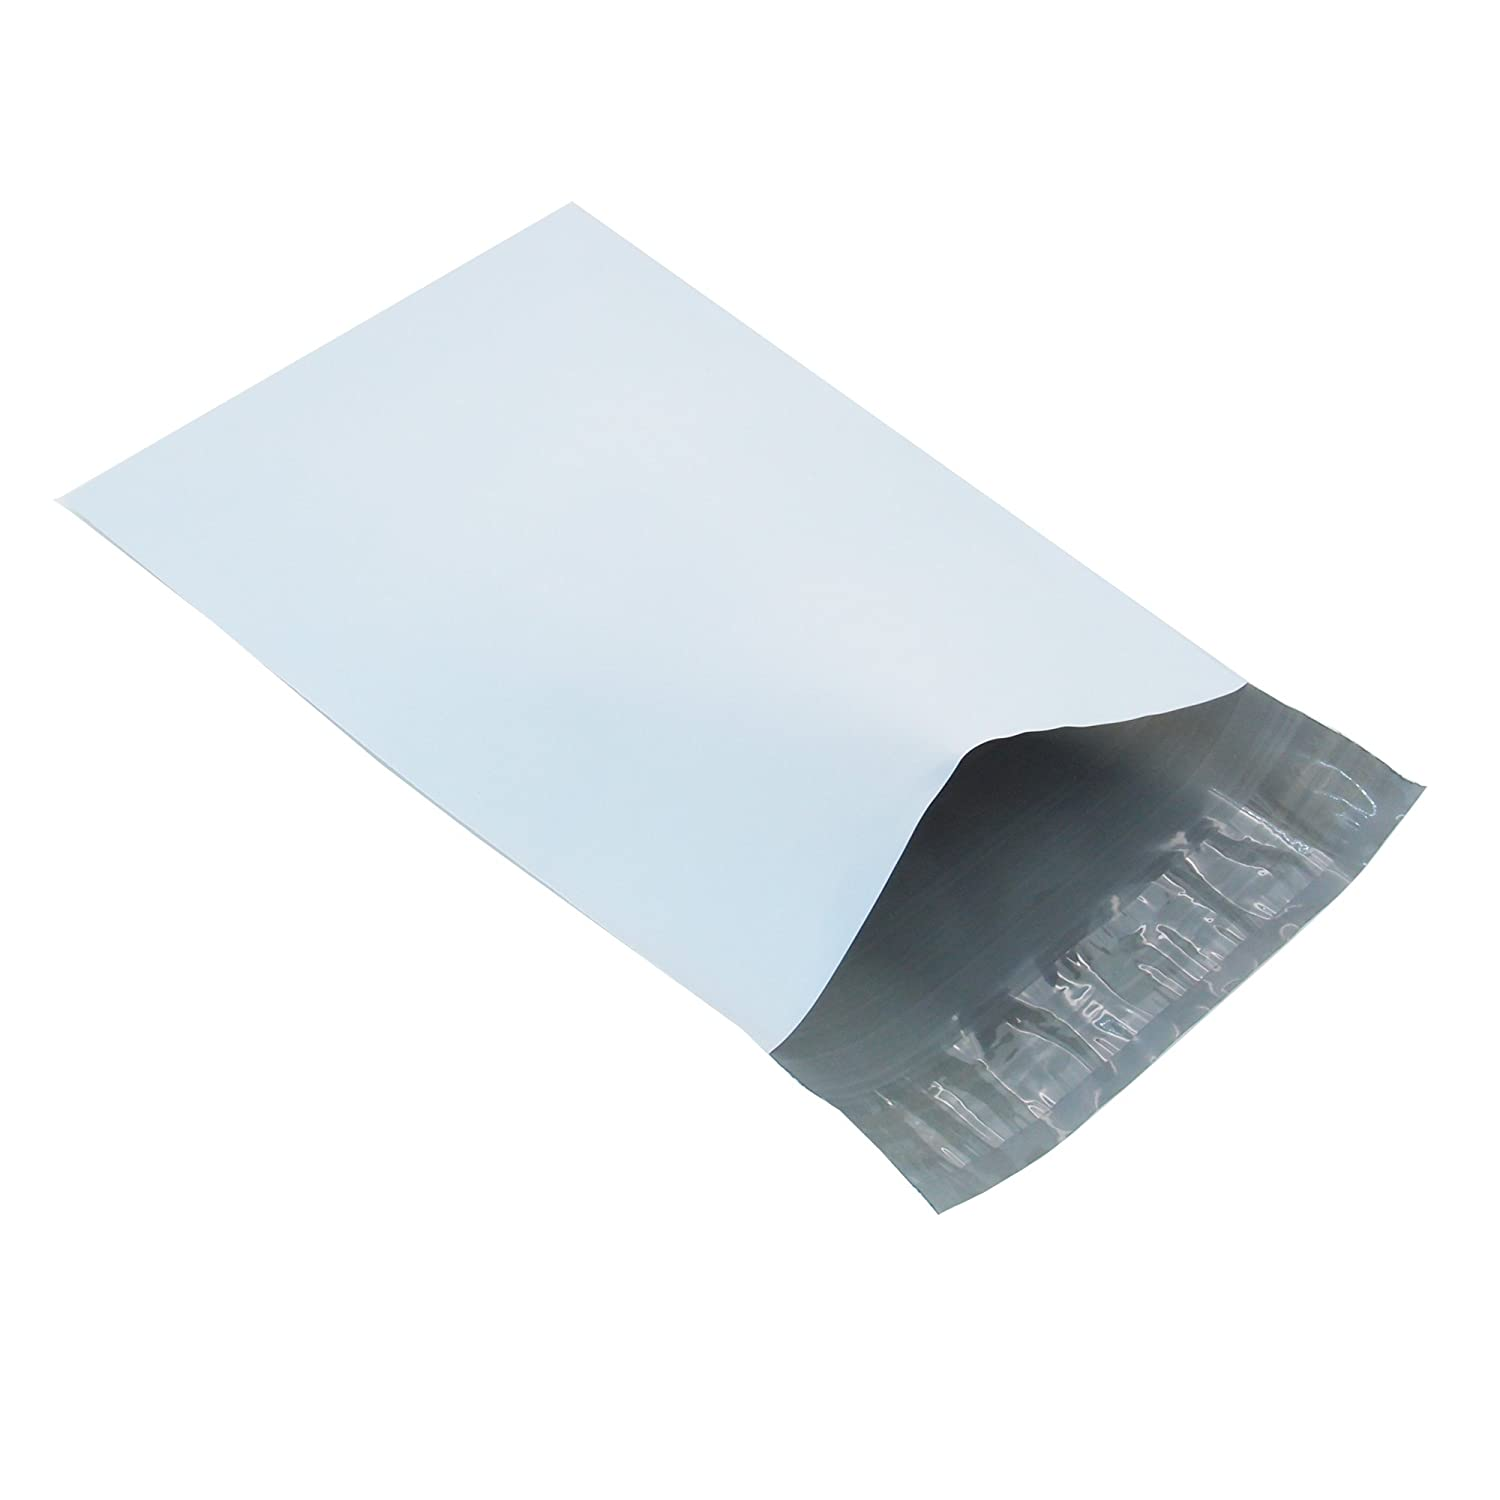 Progo 100 ct 10x13 Self-seal Poly Mailers. Tear-proof, Water-resistant and Postage-saving Lightweight Plastic Shipping Envelopes / Bags.